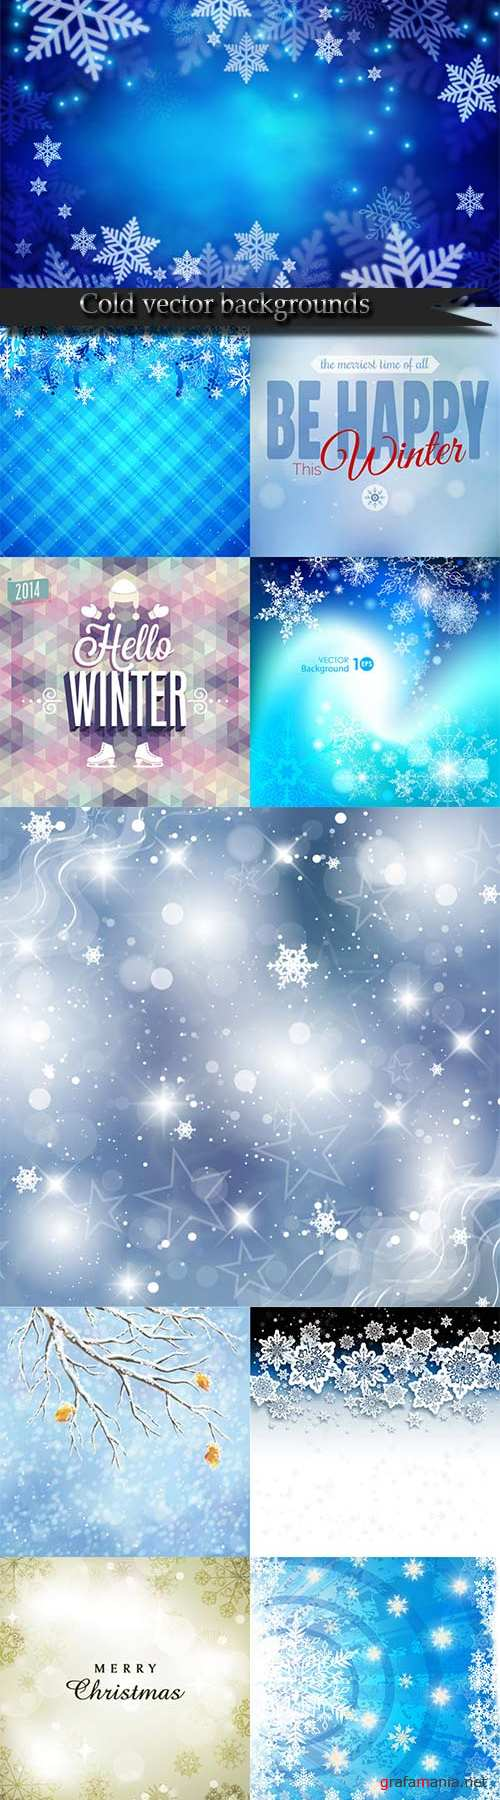 Cold vector backgrounds